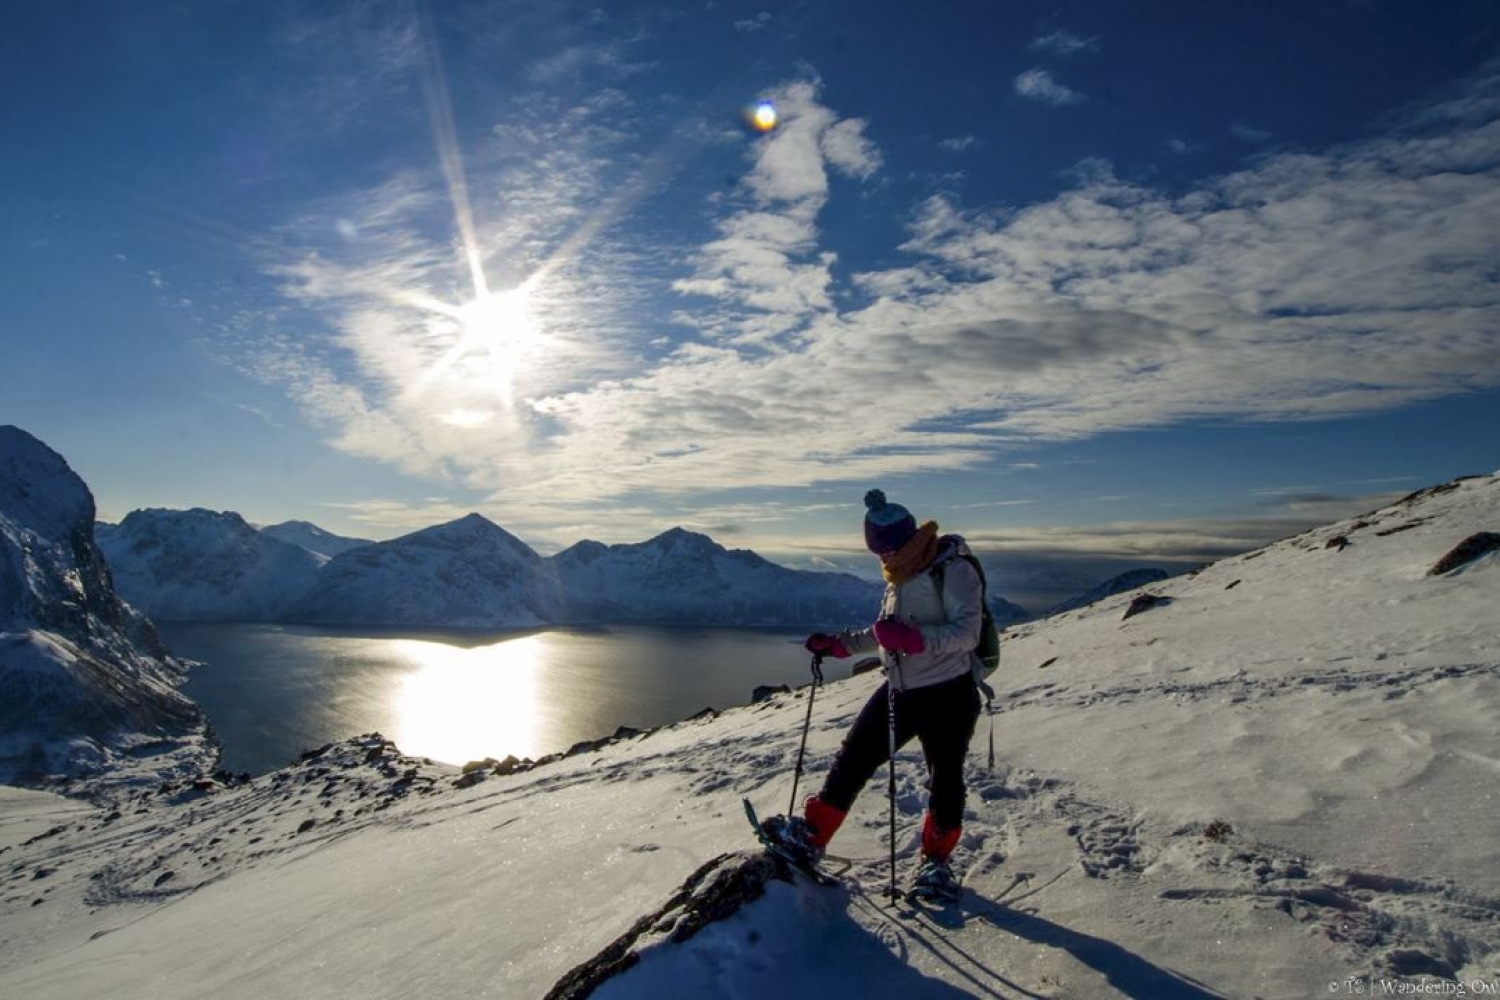 Person with snowshoes in a snowy mountain with sea, mountains and the sun in thebackground